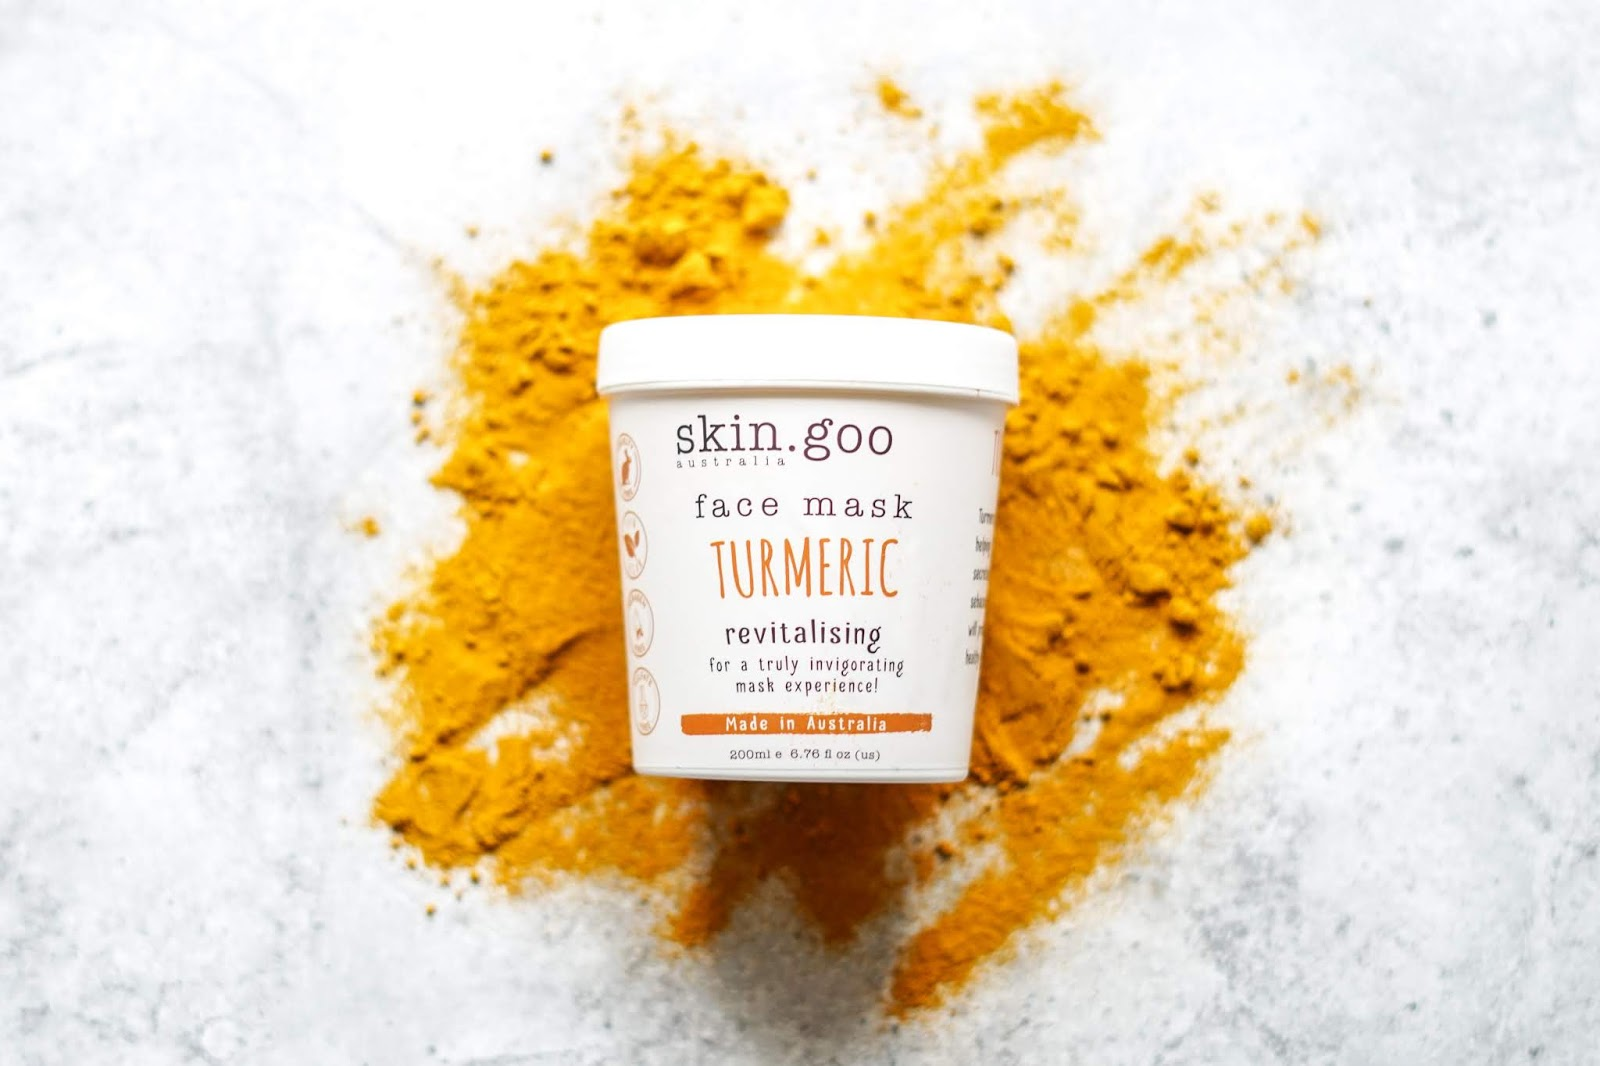 skin.goo Australia Turmeric Face Mask (One Unique)